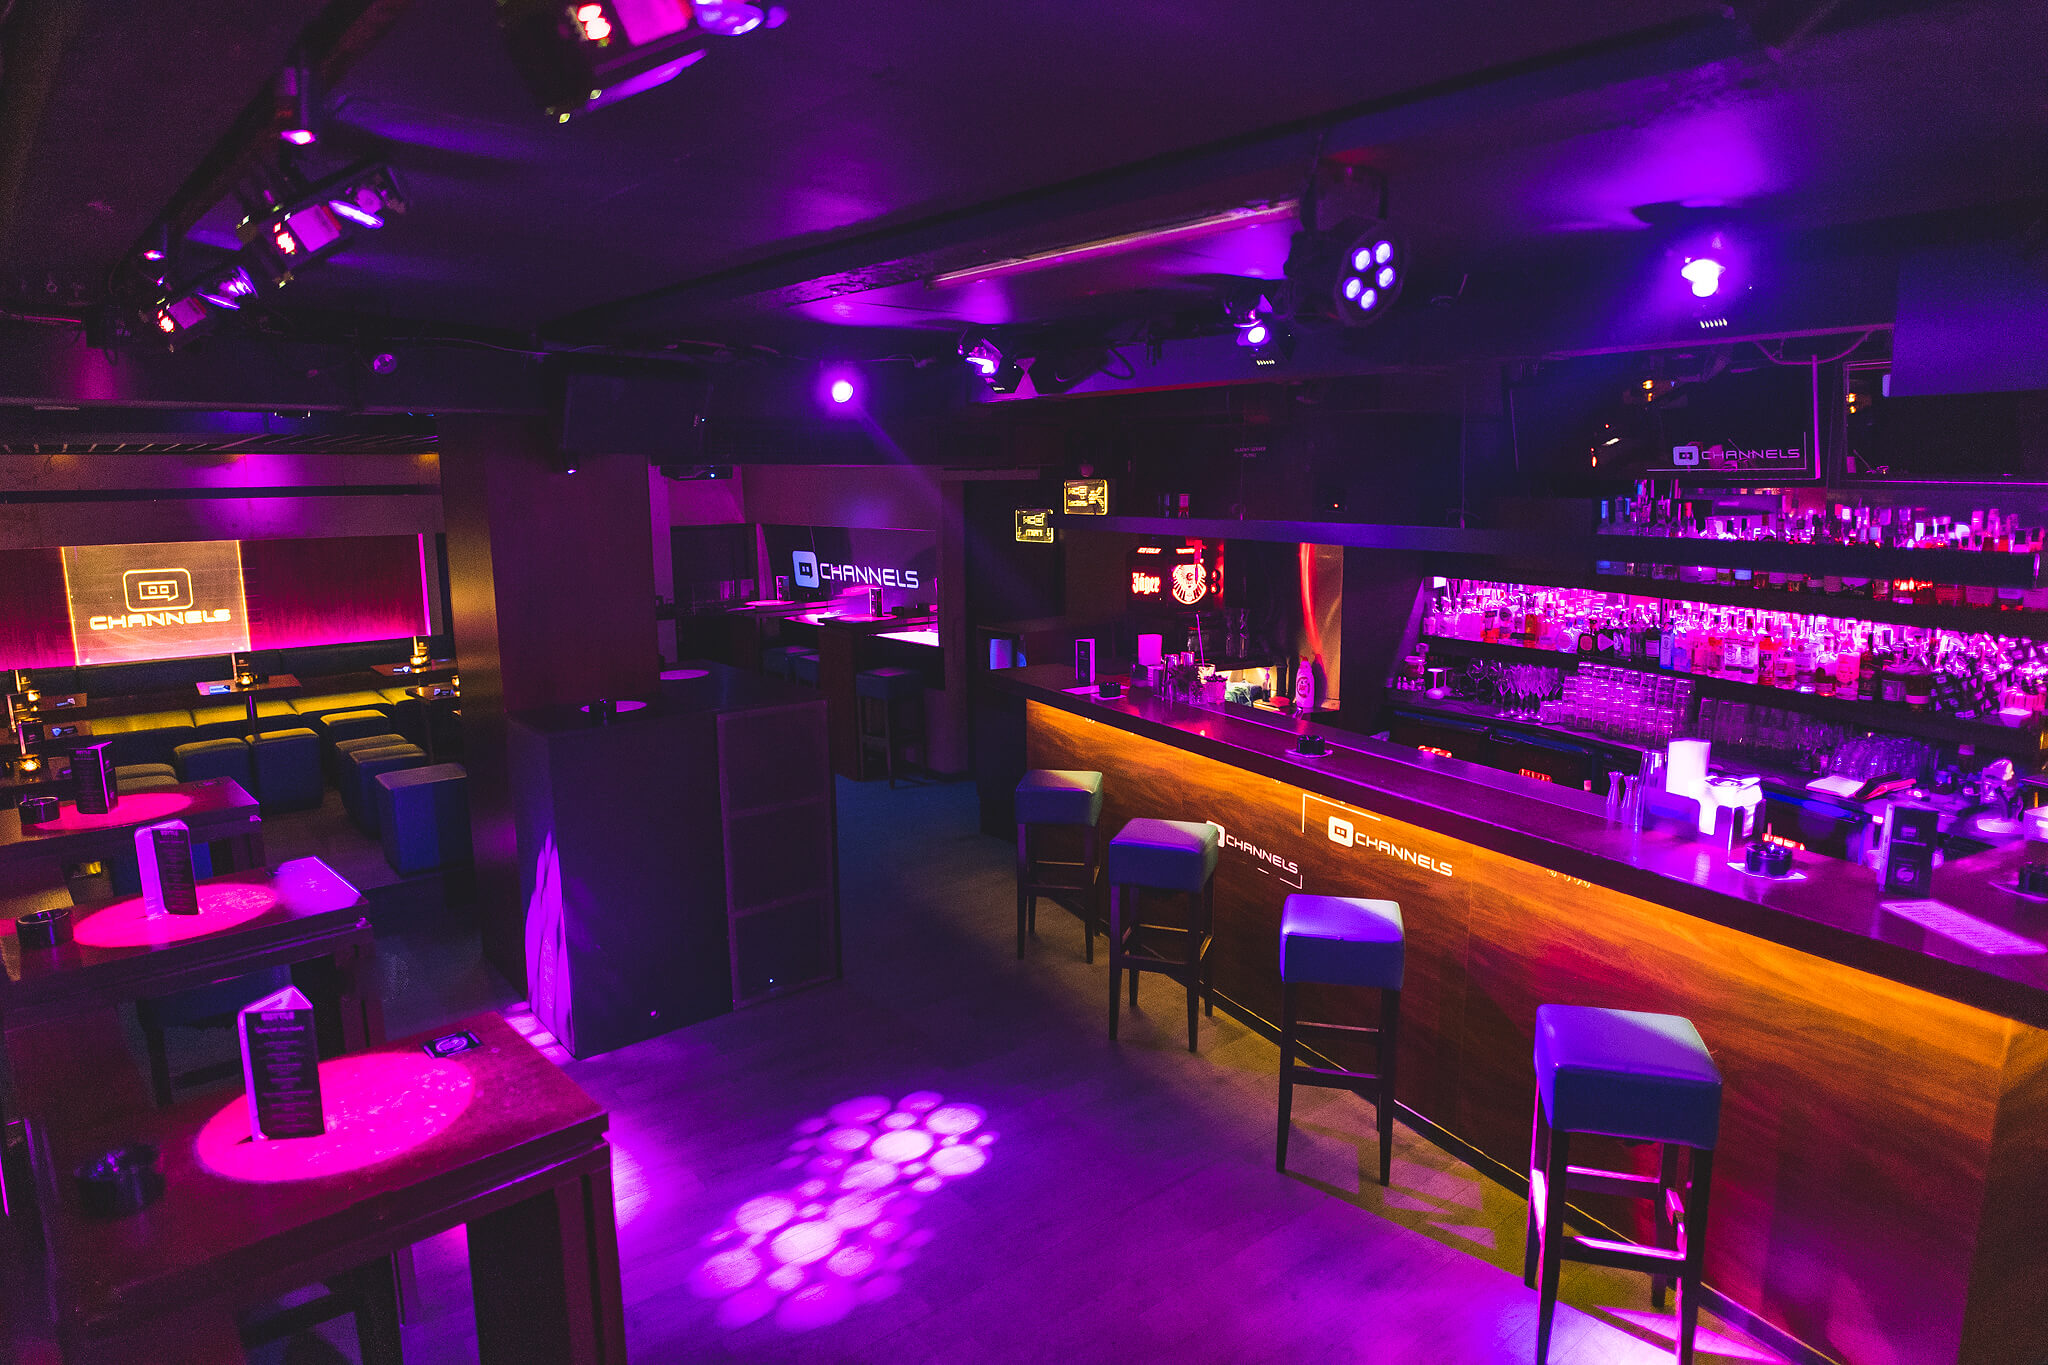 Channels club interior4